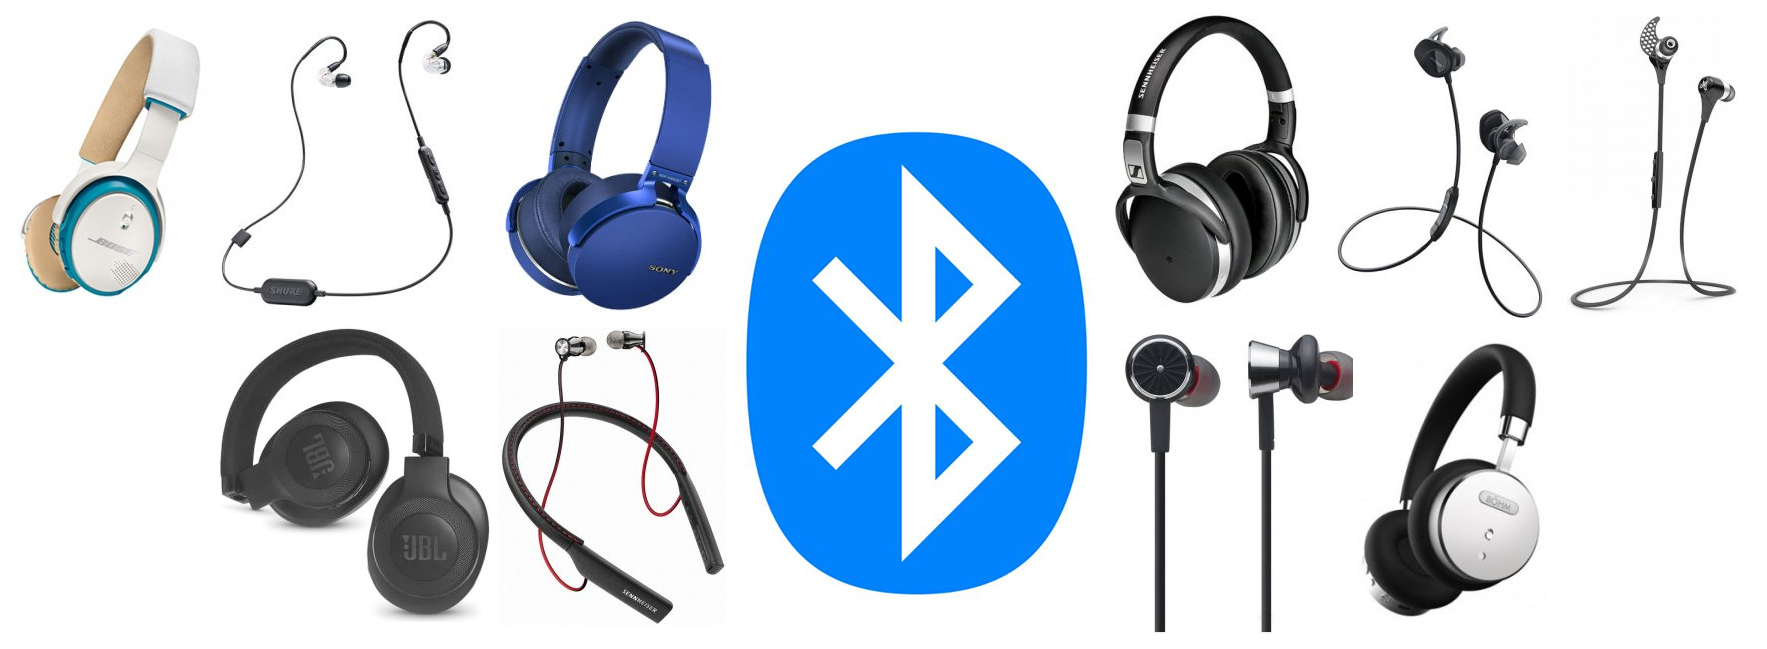 9426897ccee The Best Bluetooth Headphones for an Under $200 Budget - The Wire Realm